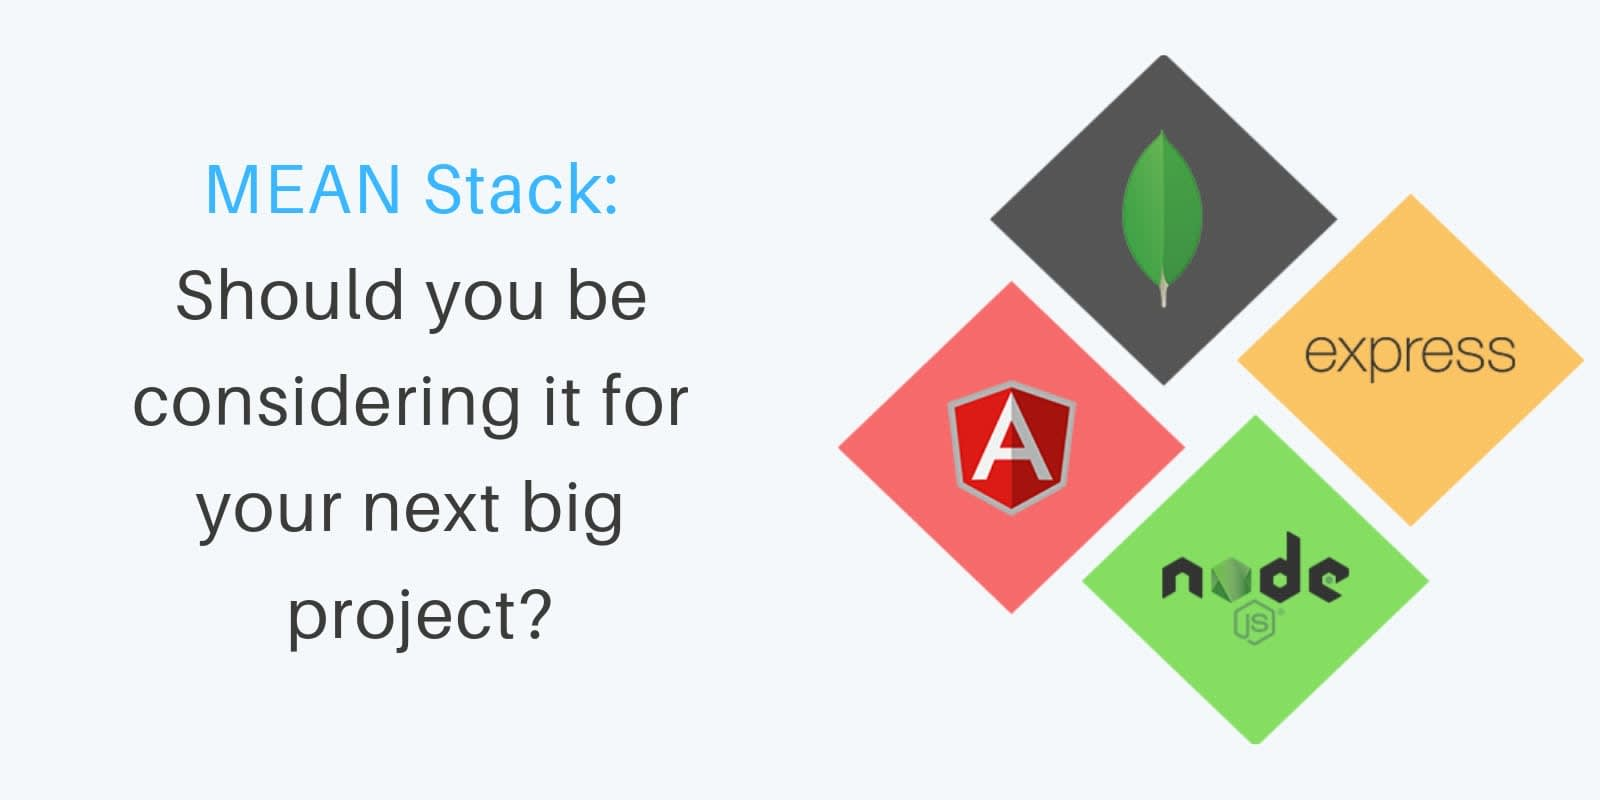 Why use MEAN stack for enterprise application development?